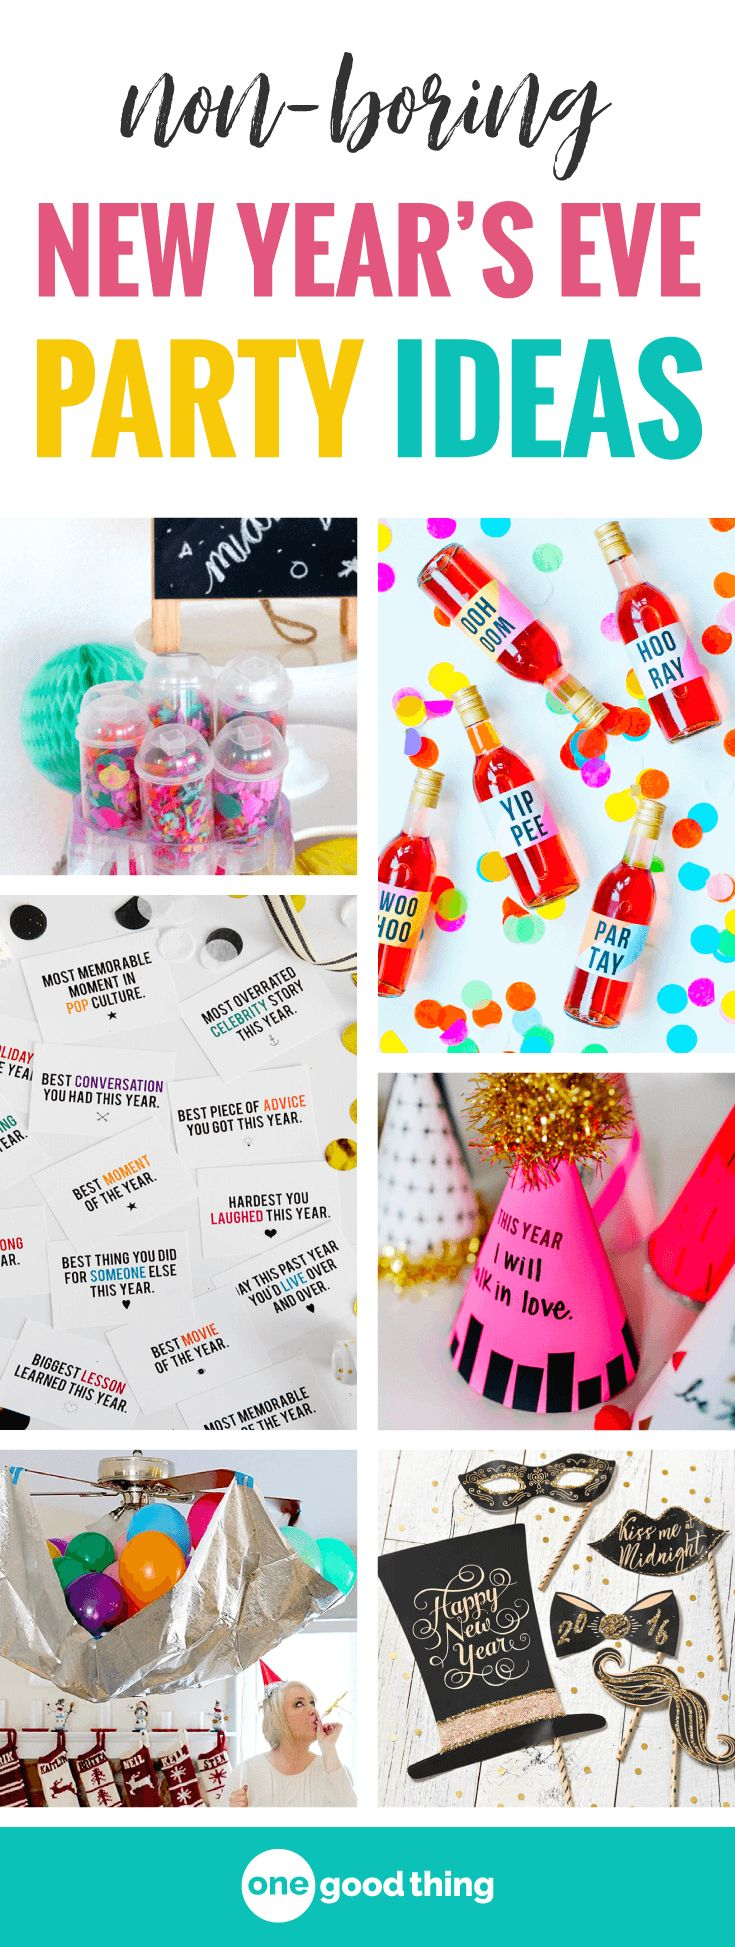 It's party time! Ringing in the New Year at home doesn't have to be boring...not by a long shot!Here are a bunch of fun and festive ideas tomake the evening special even though the surroundings are familiar.